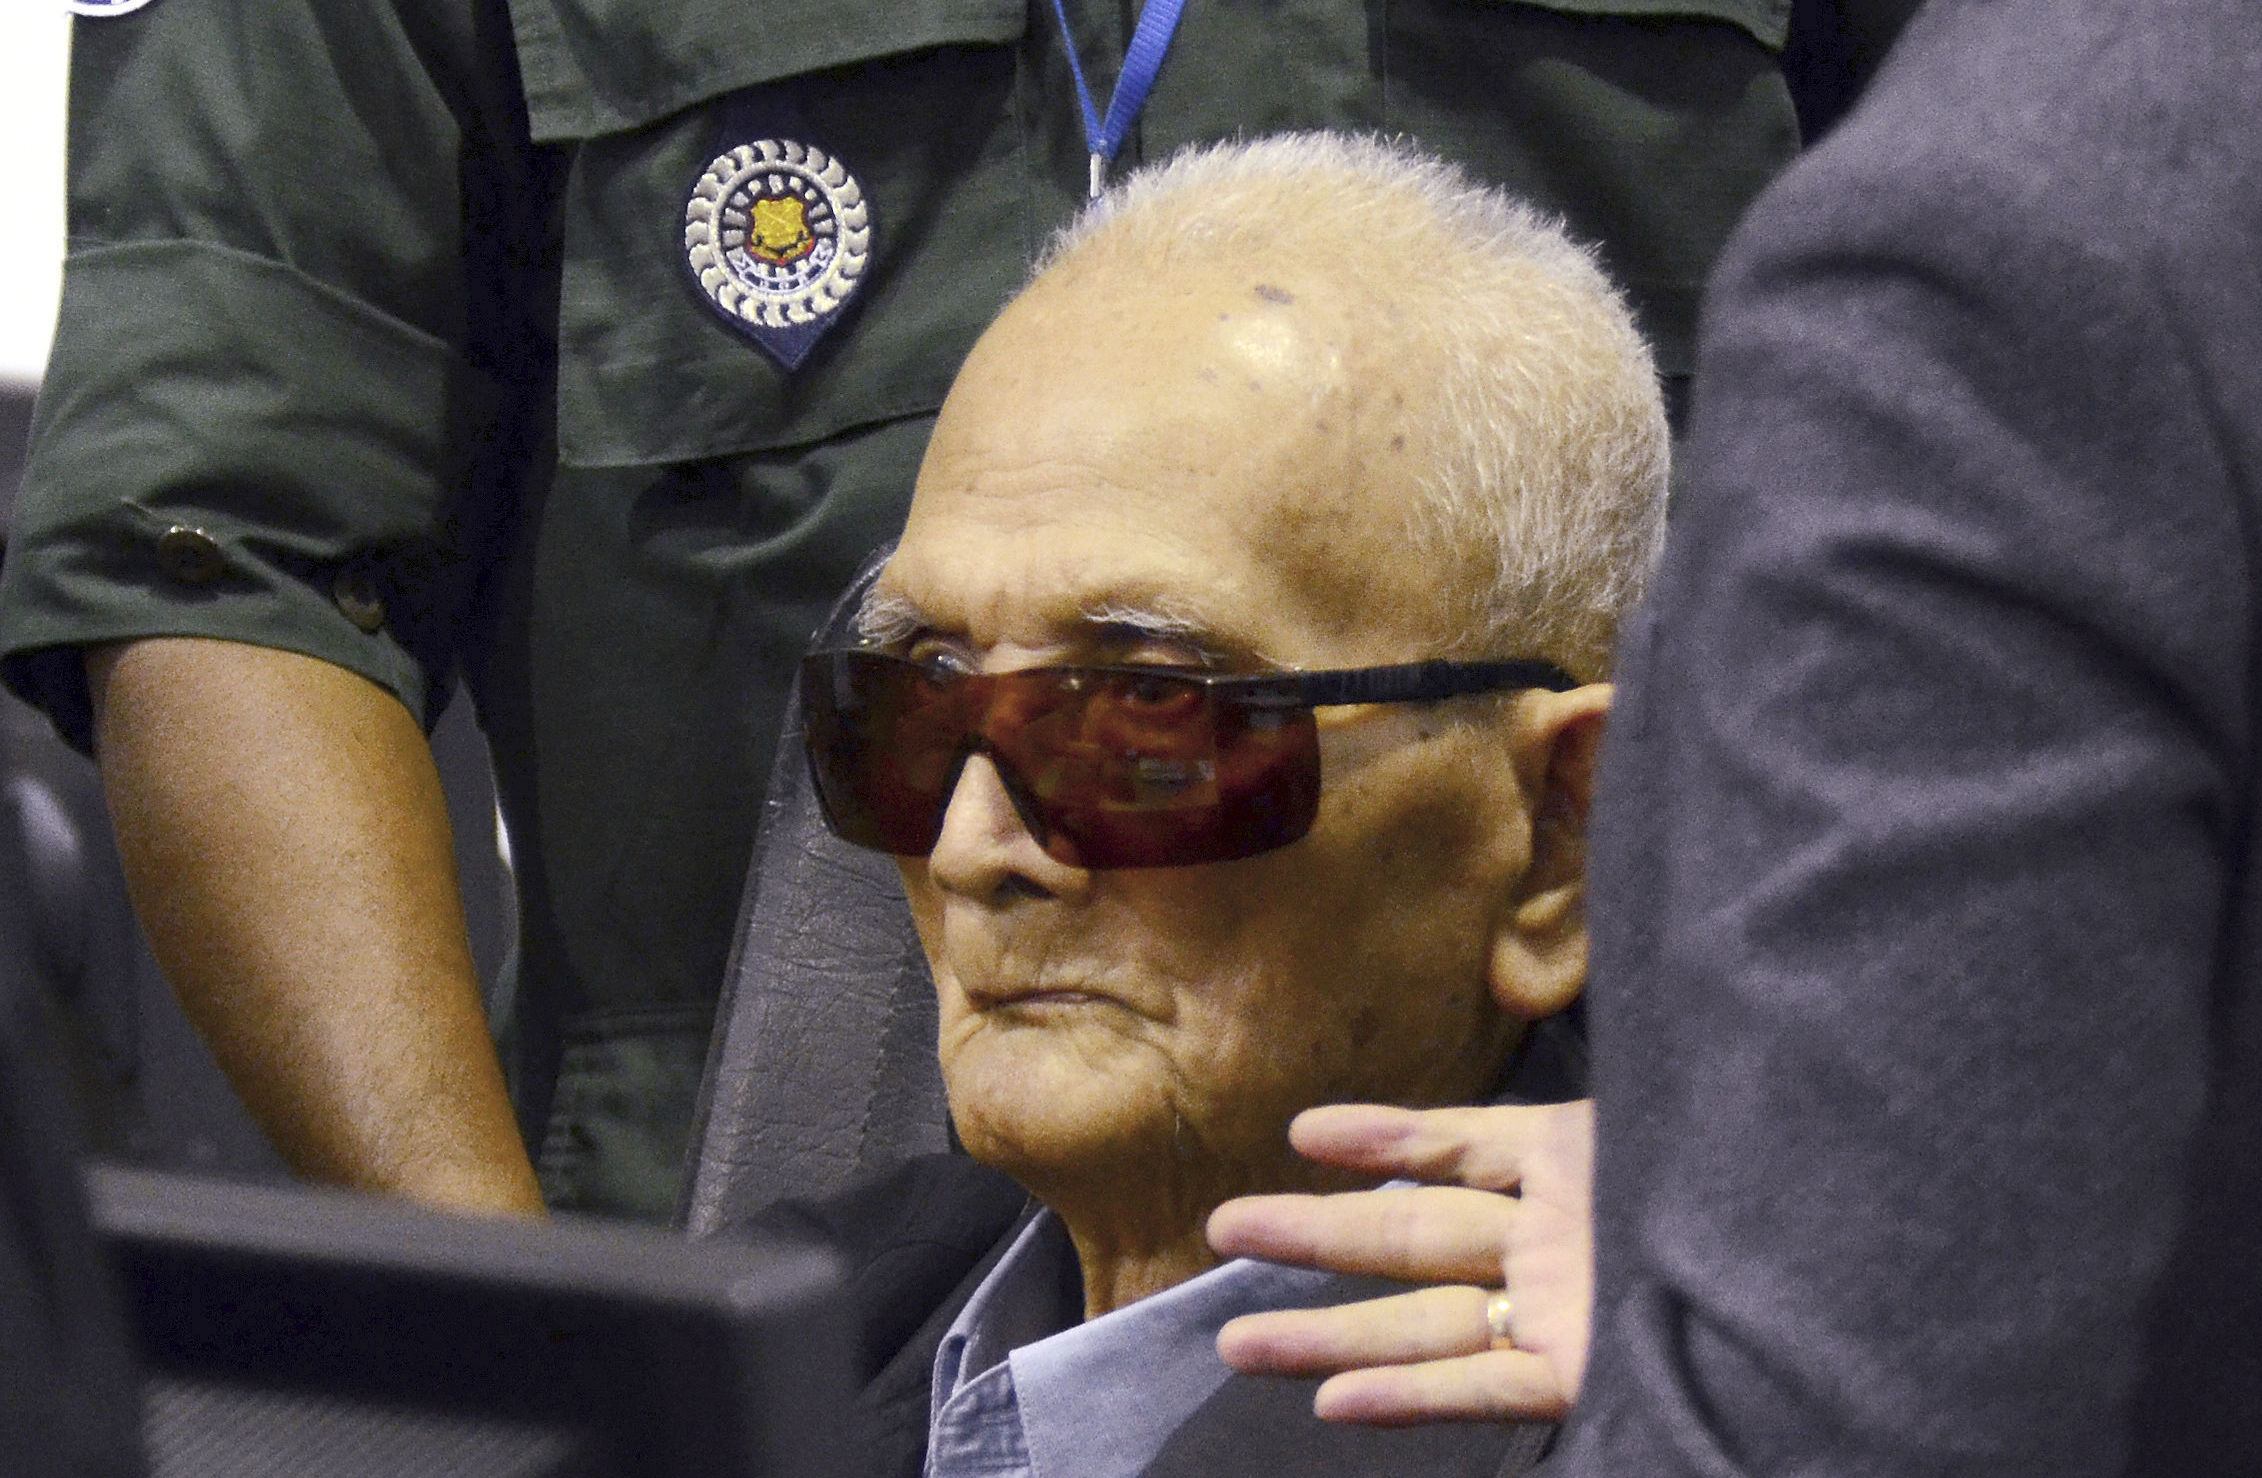 Nuon Chea, former Khmer Rouge chief ideologist, was convicted for his part in the deaths of an estimated 1.7 million Cambodians